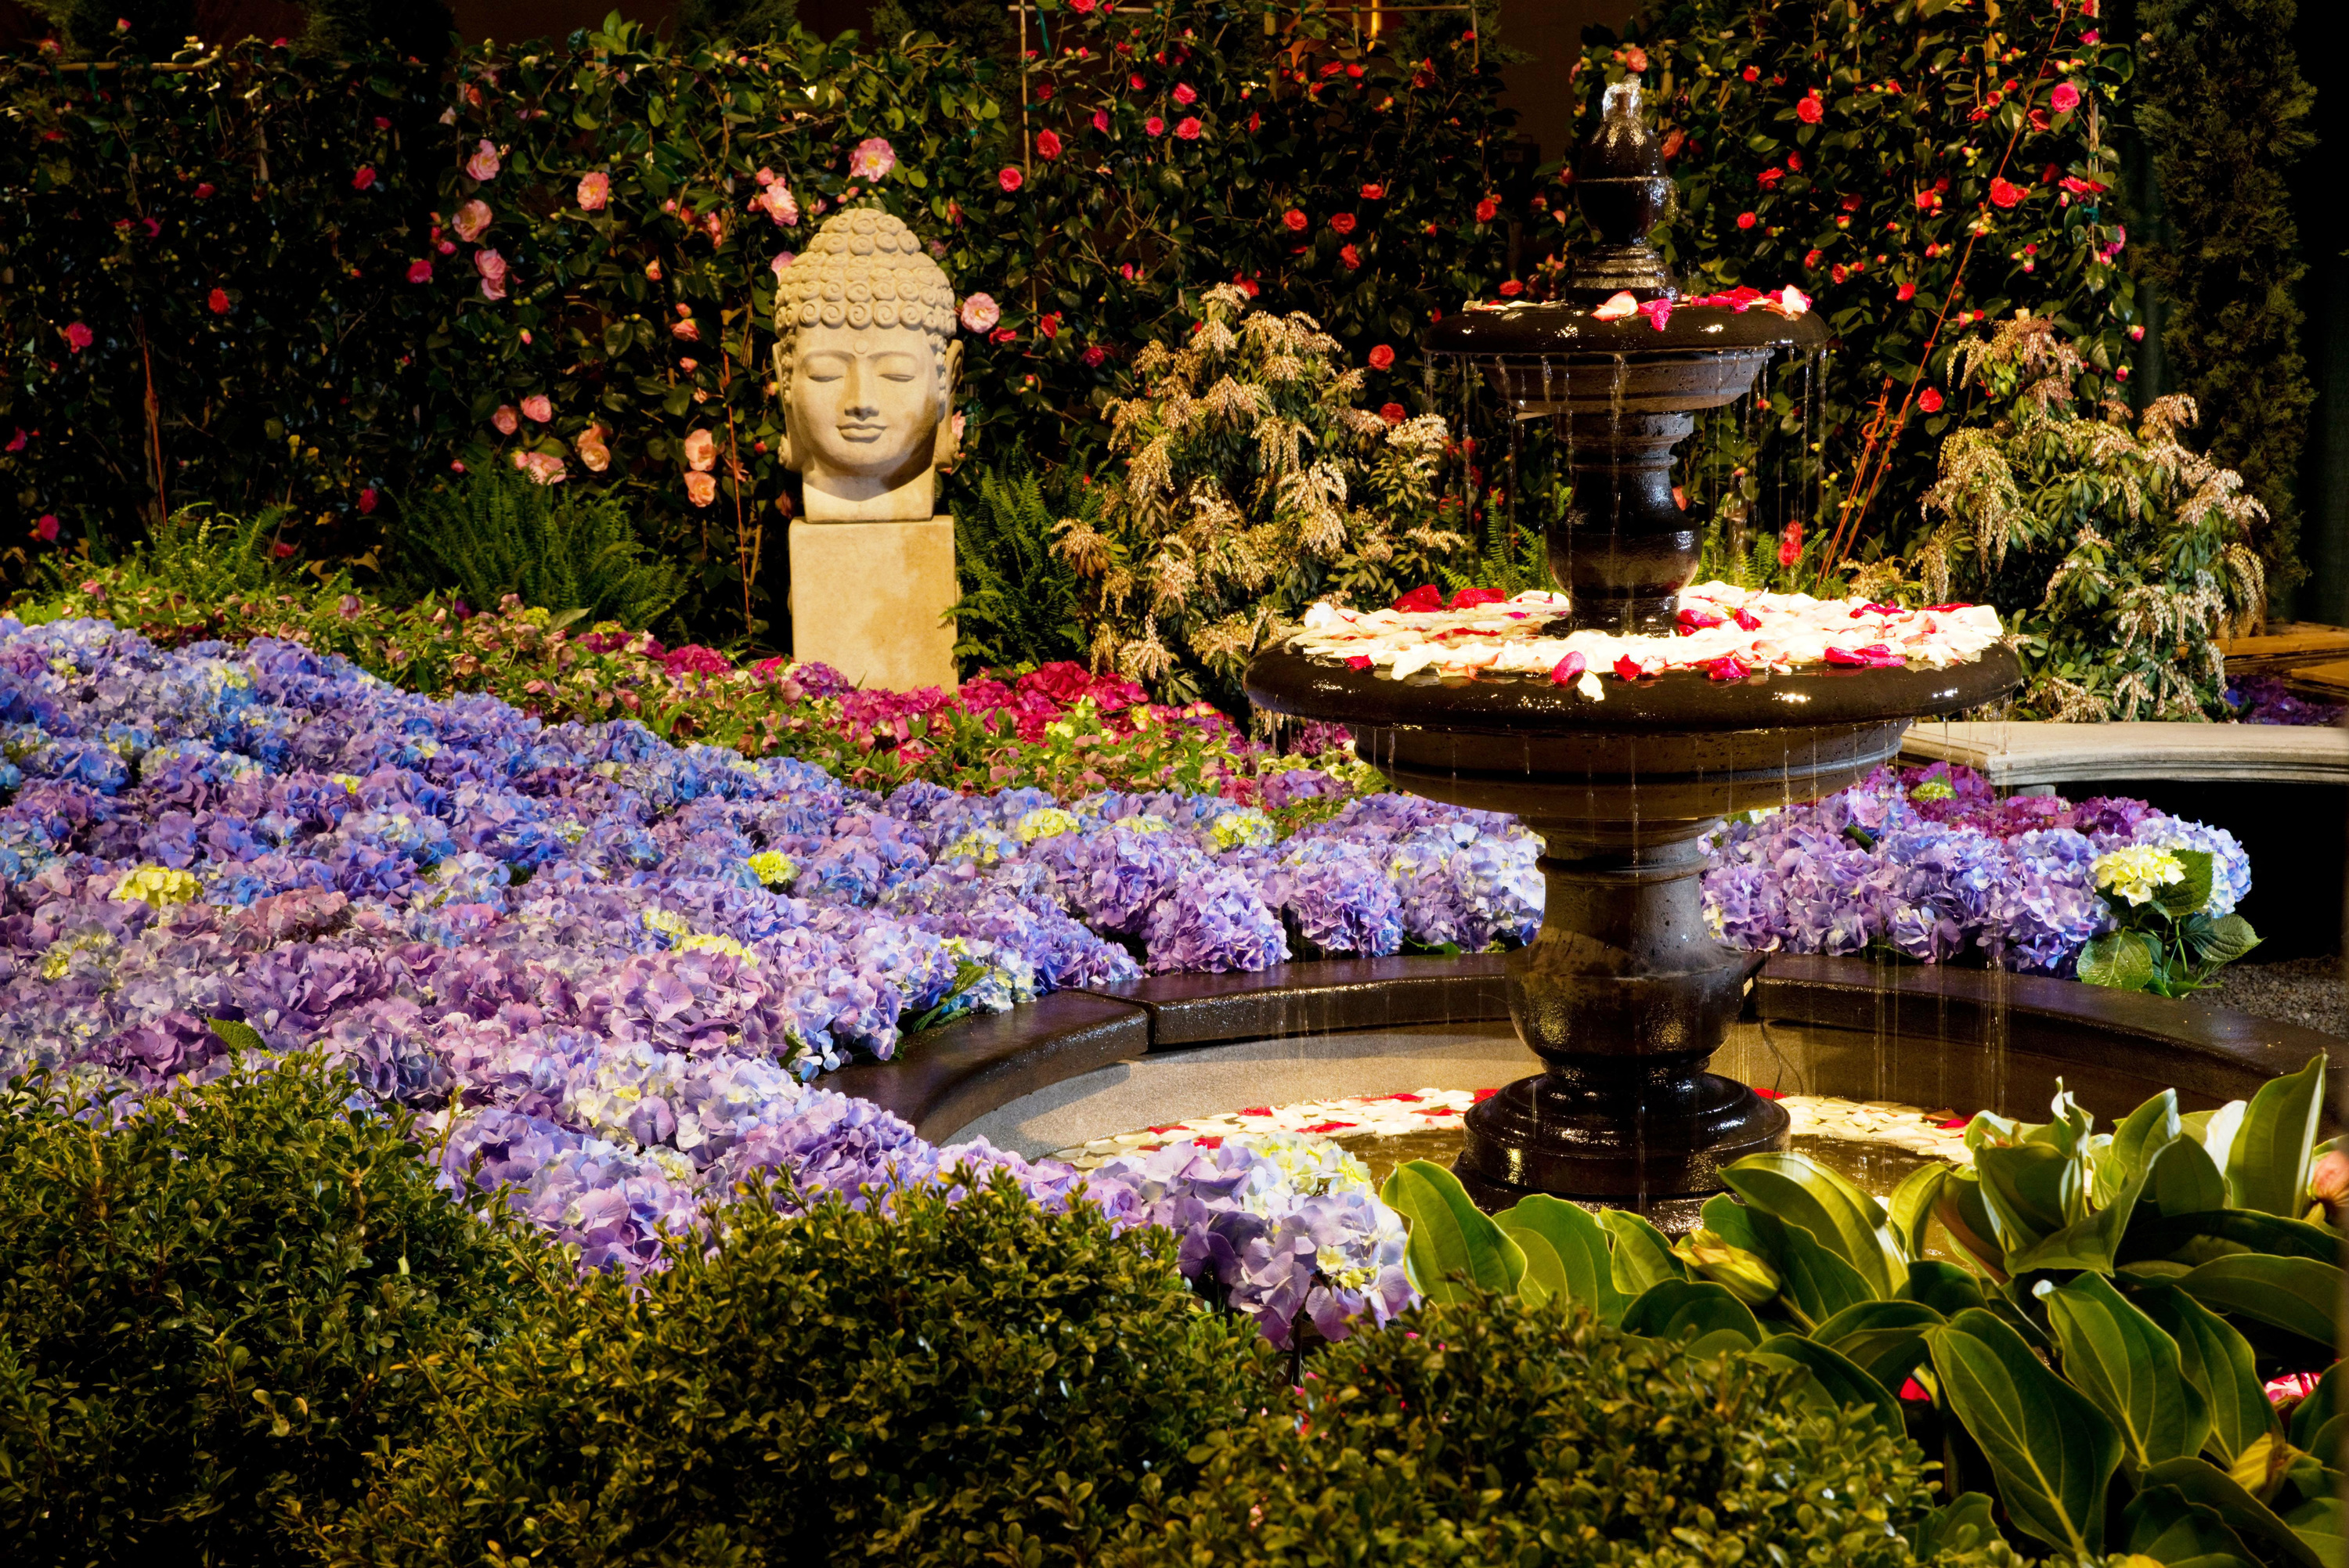 chicago flower & garden show | things to do in chicago